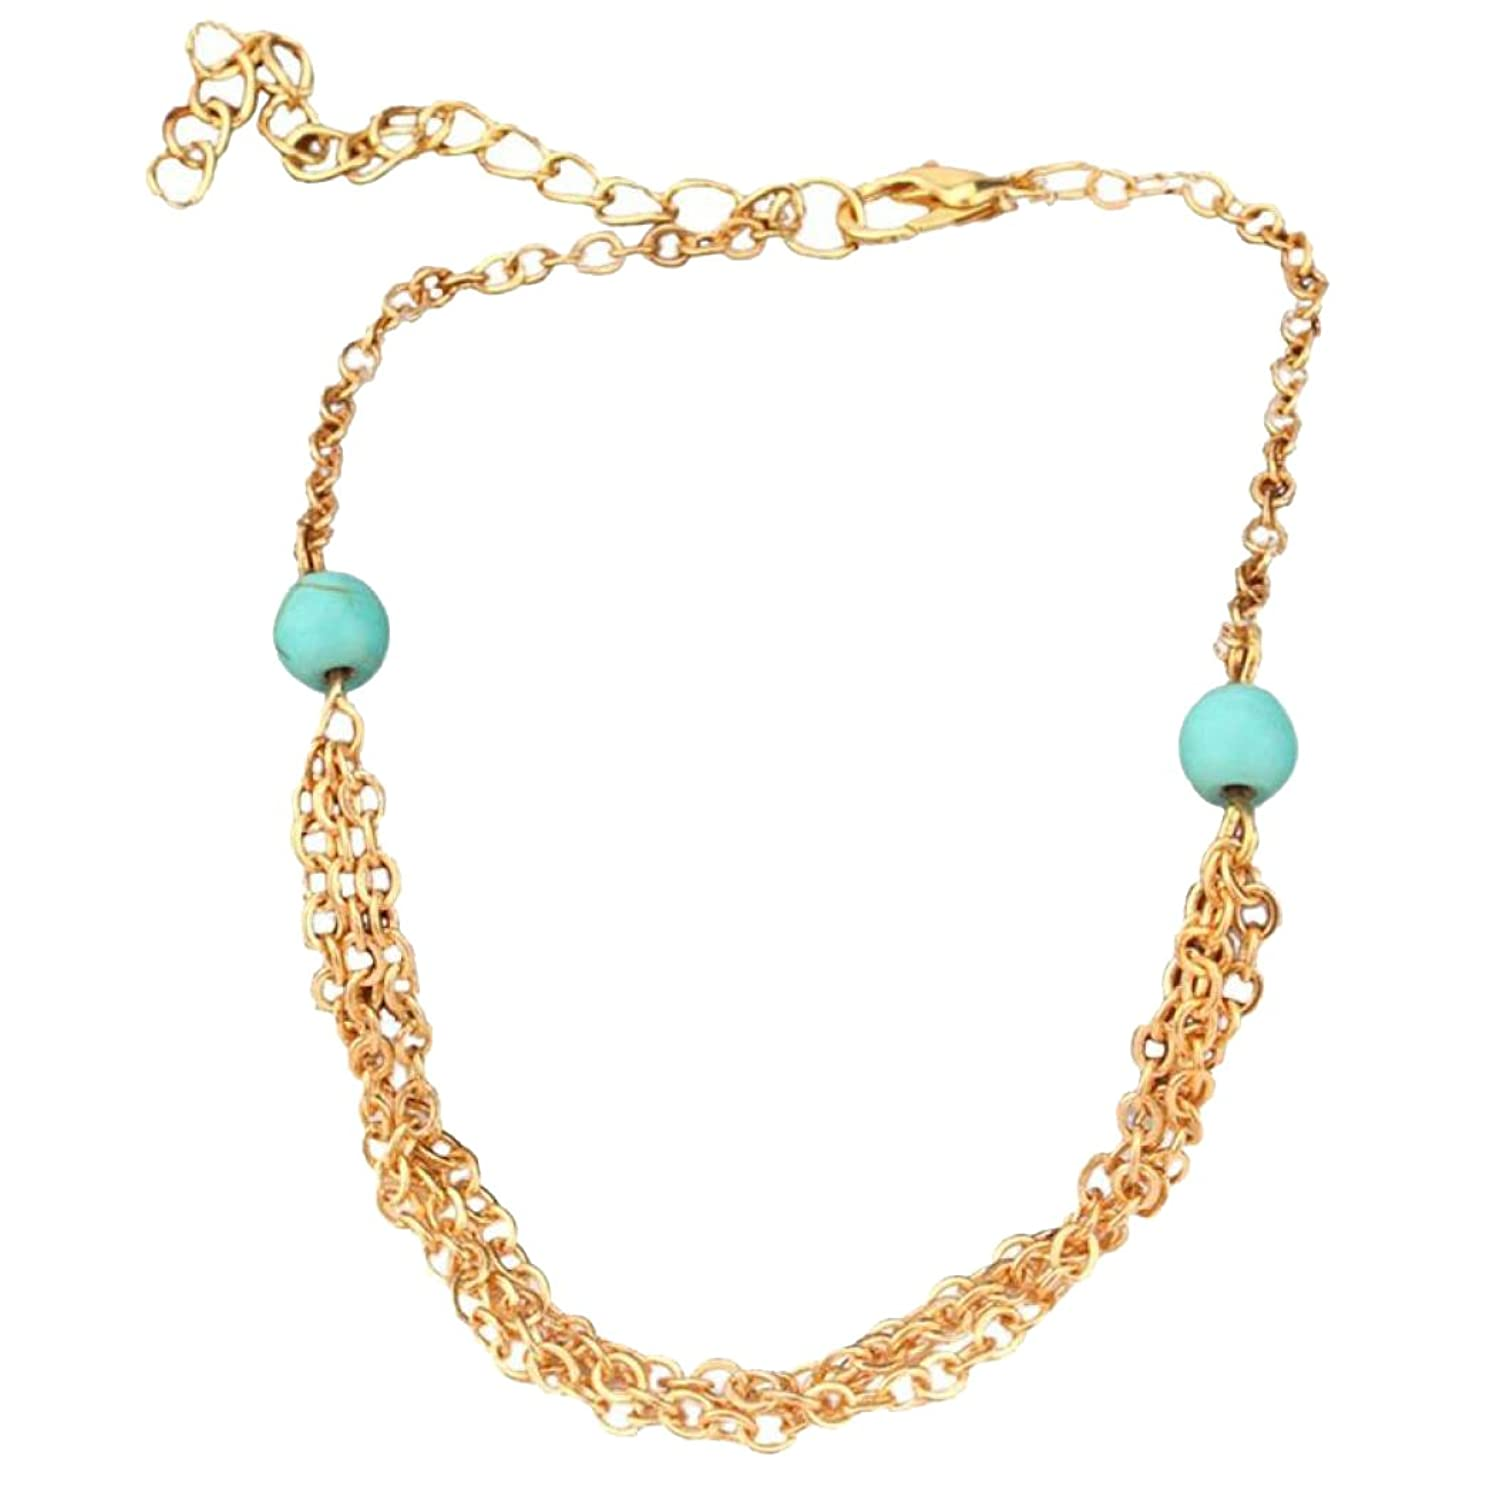 Anklet Chain,Fabal Turquoise Beaded Tassel Multilayer Anklets